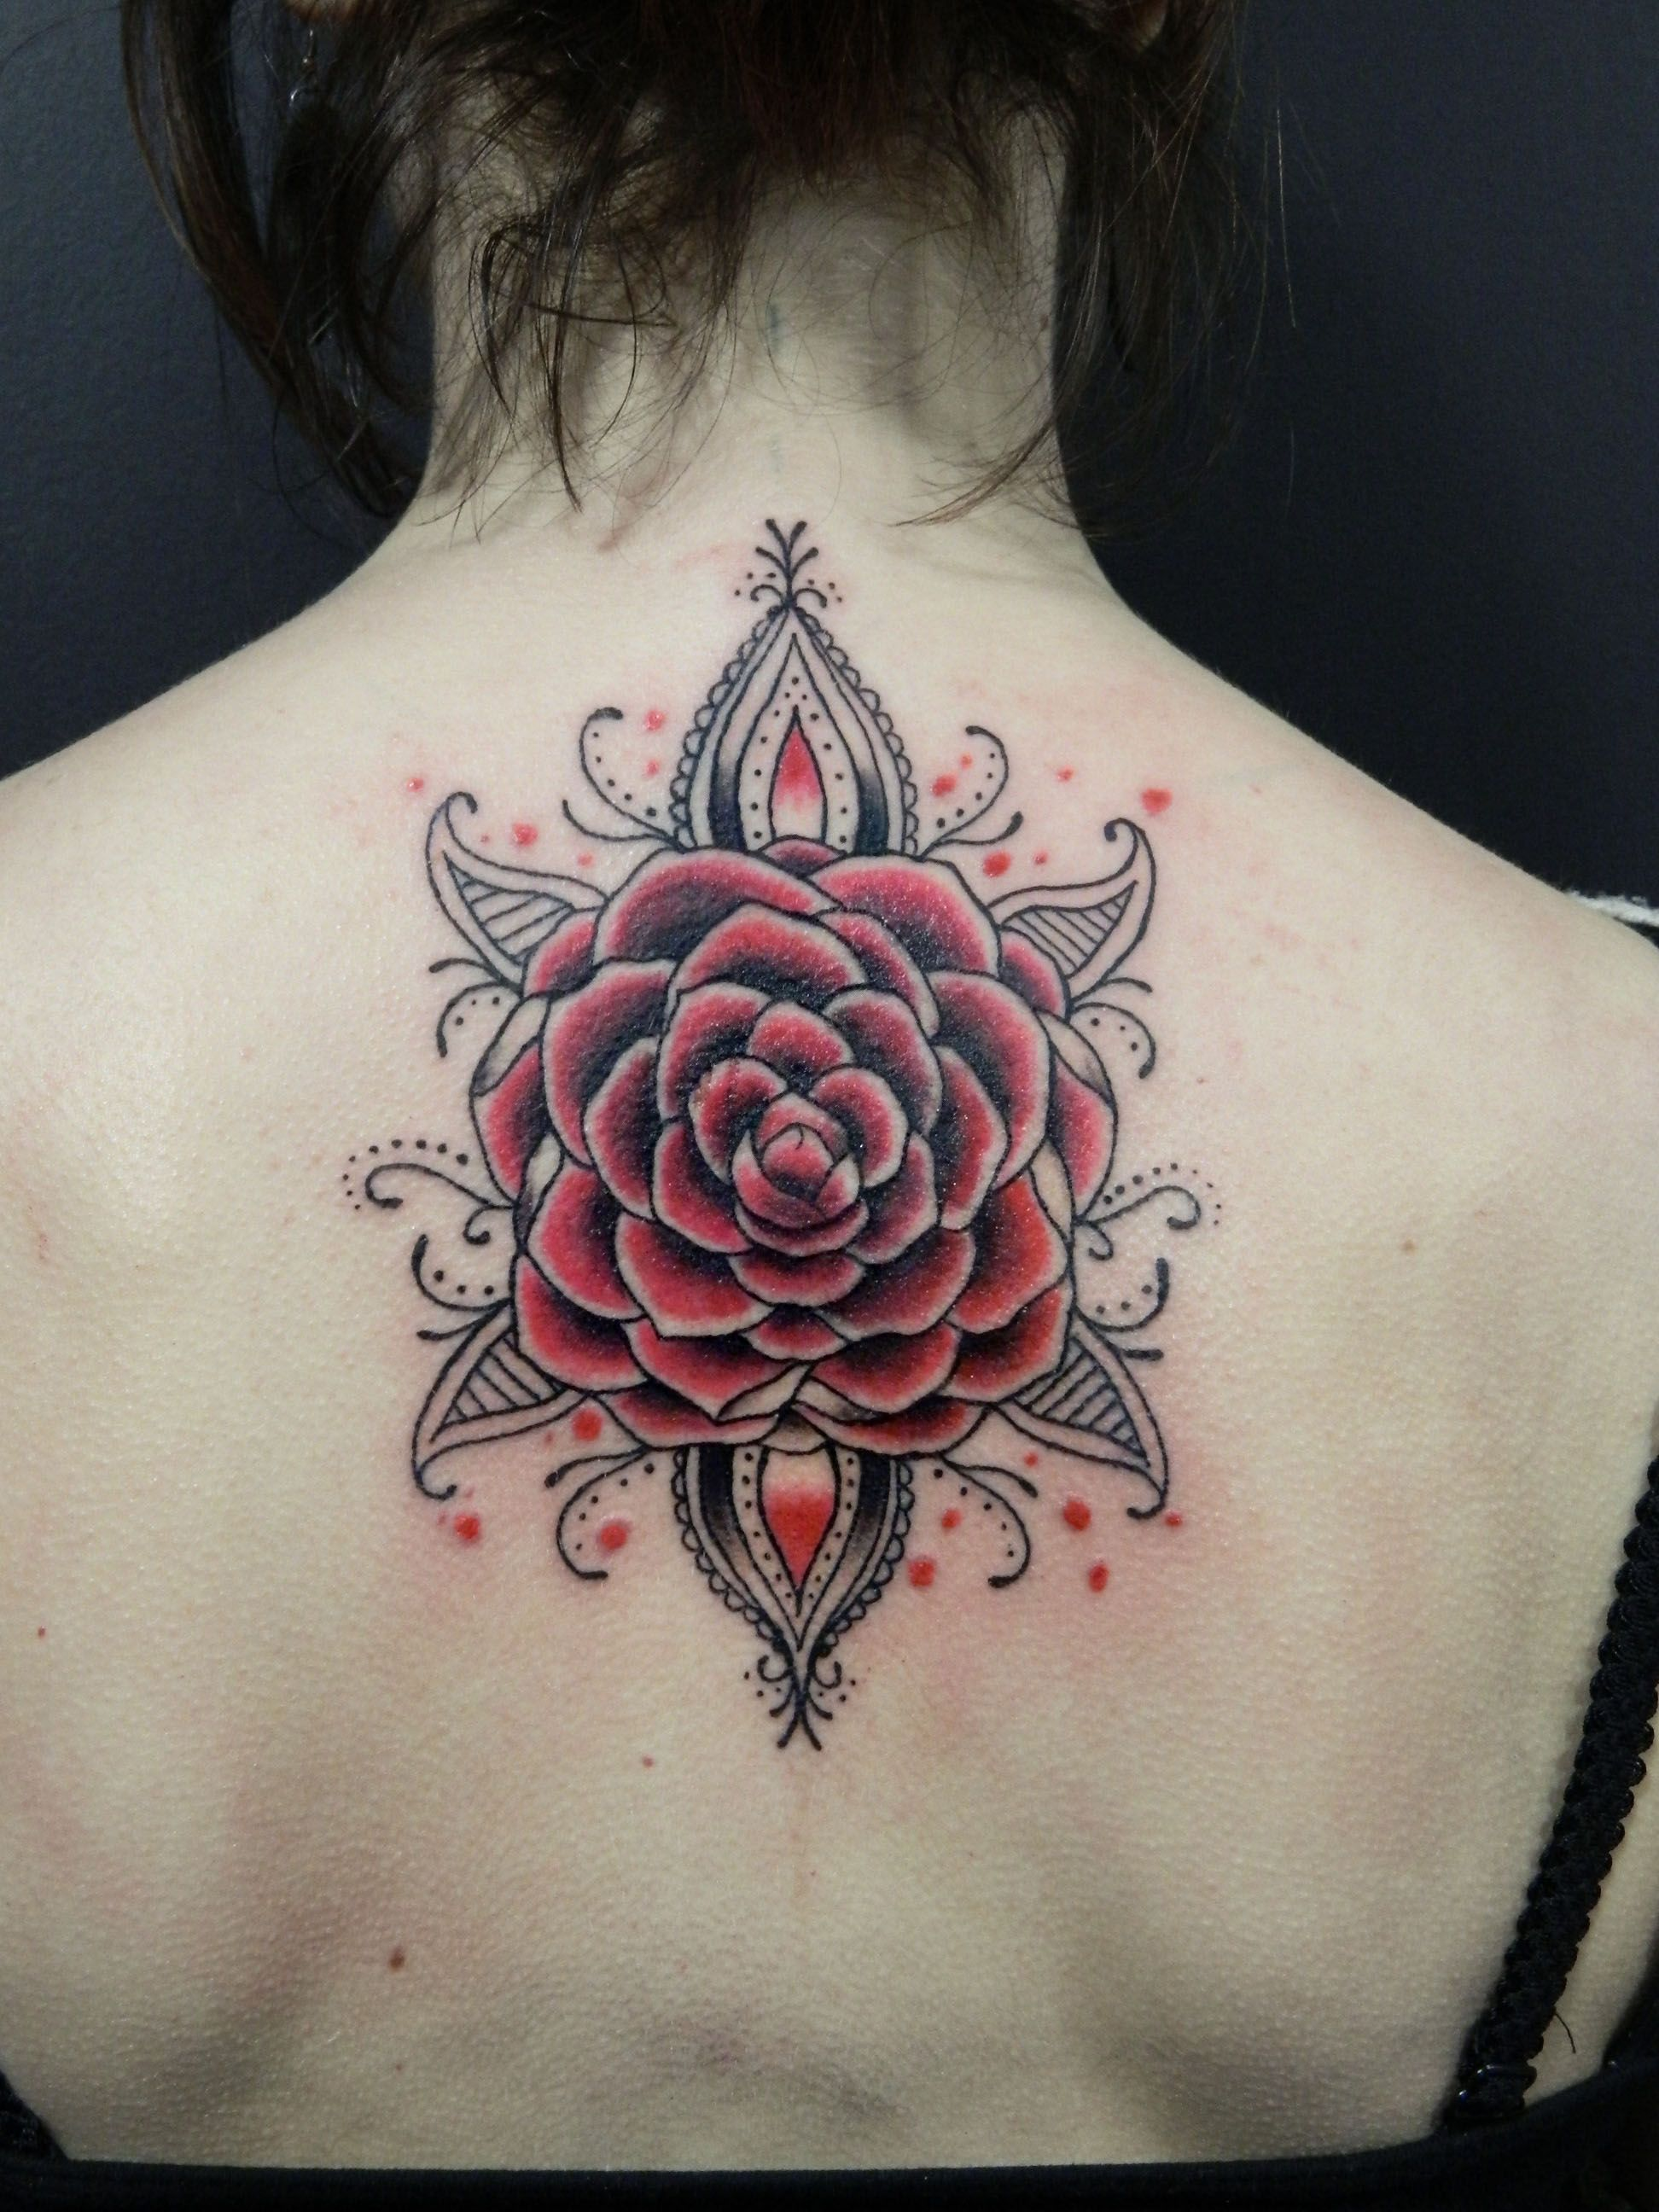 620637f4f Camellia flower tattoo - black & grey, red. By Elisa Devihate ...